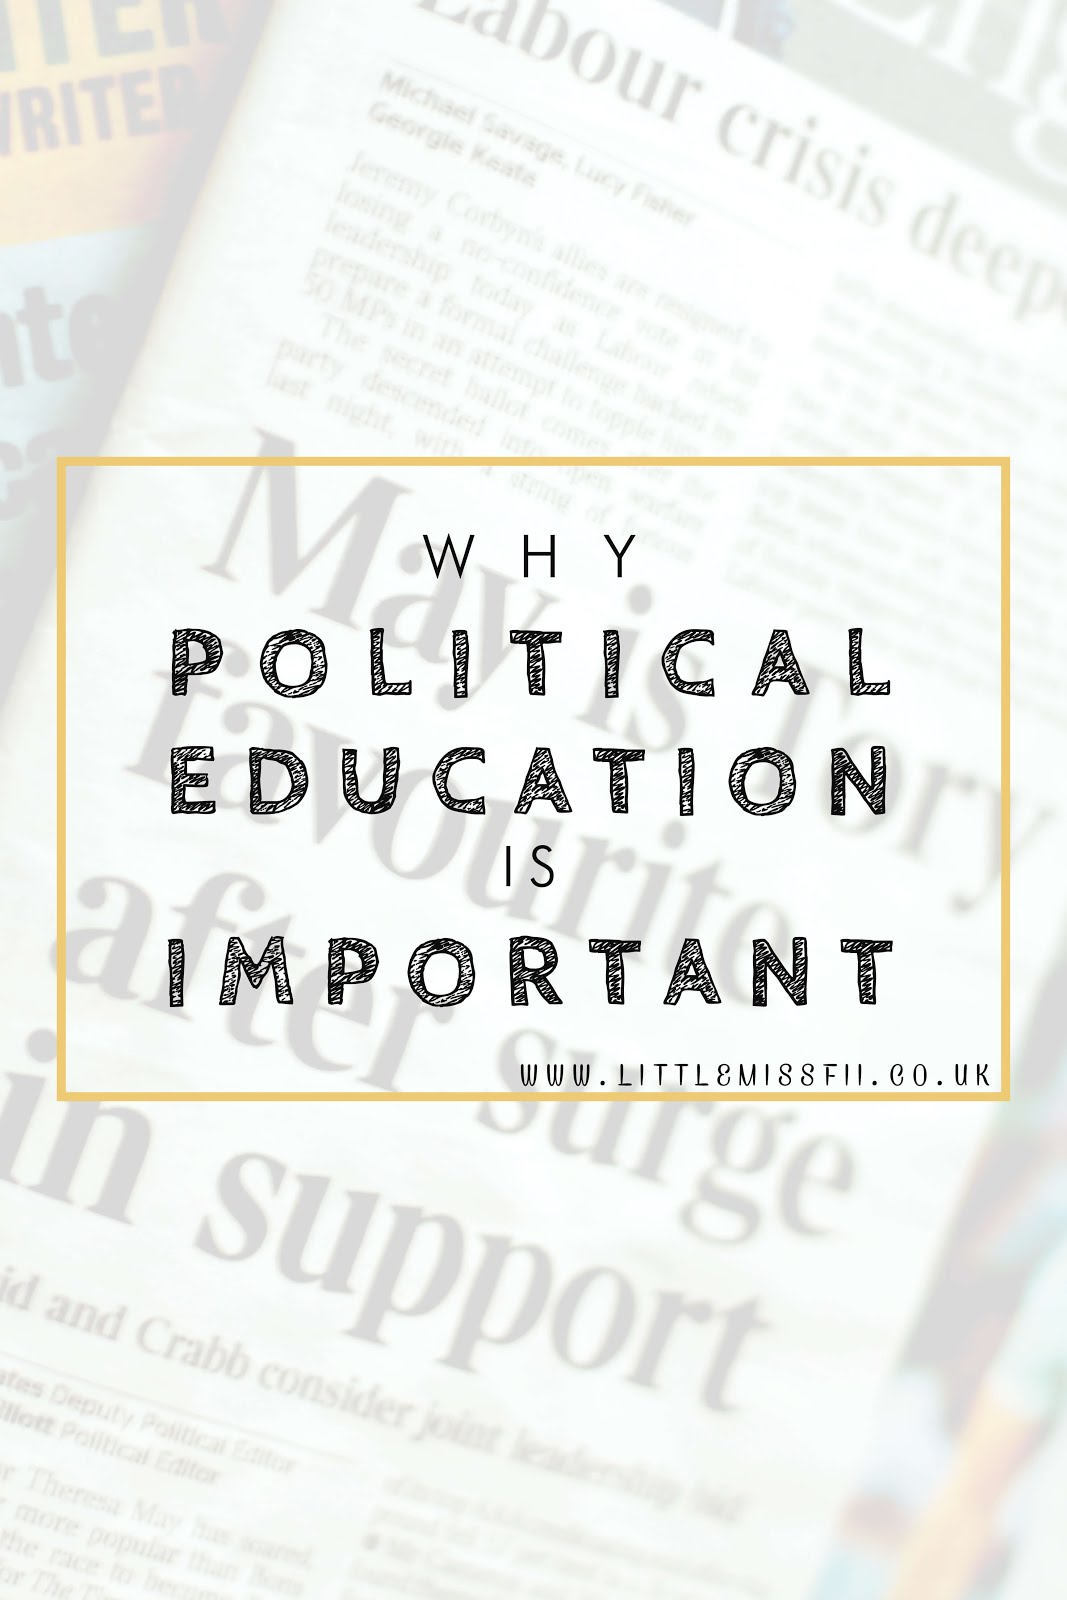 Brexit and the need for political education and engagement